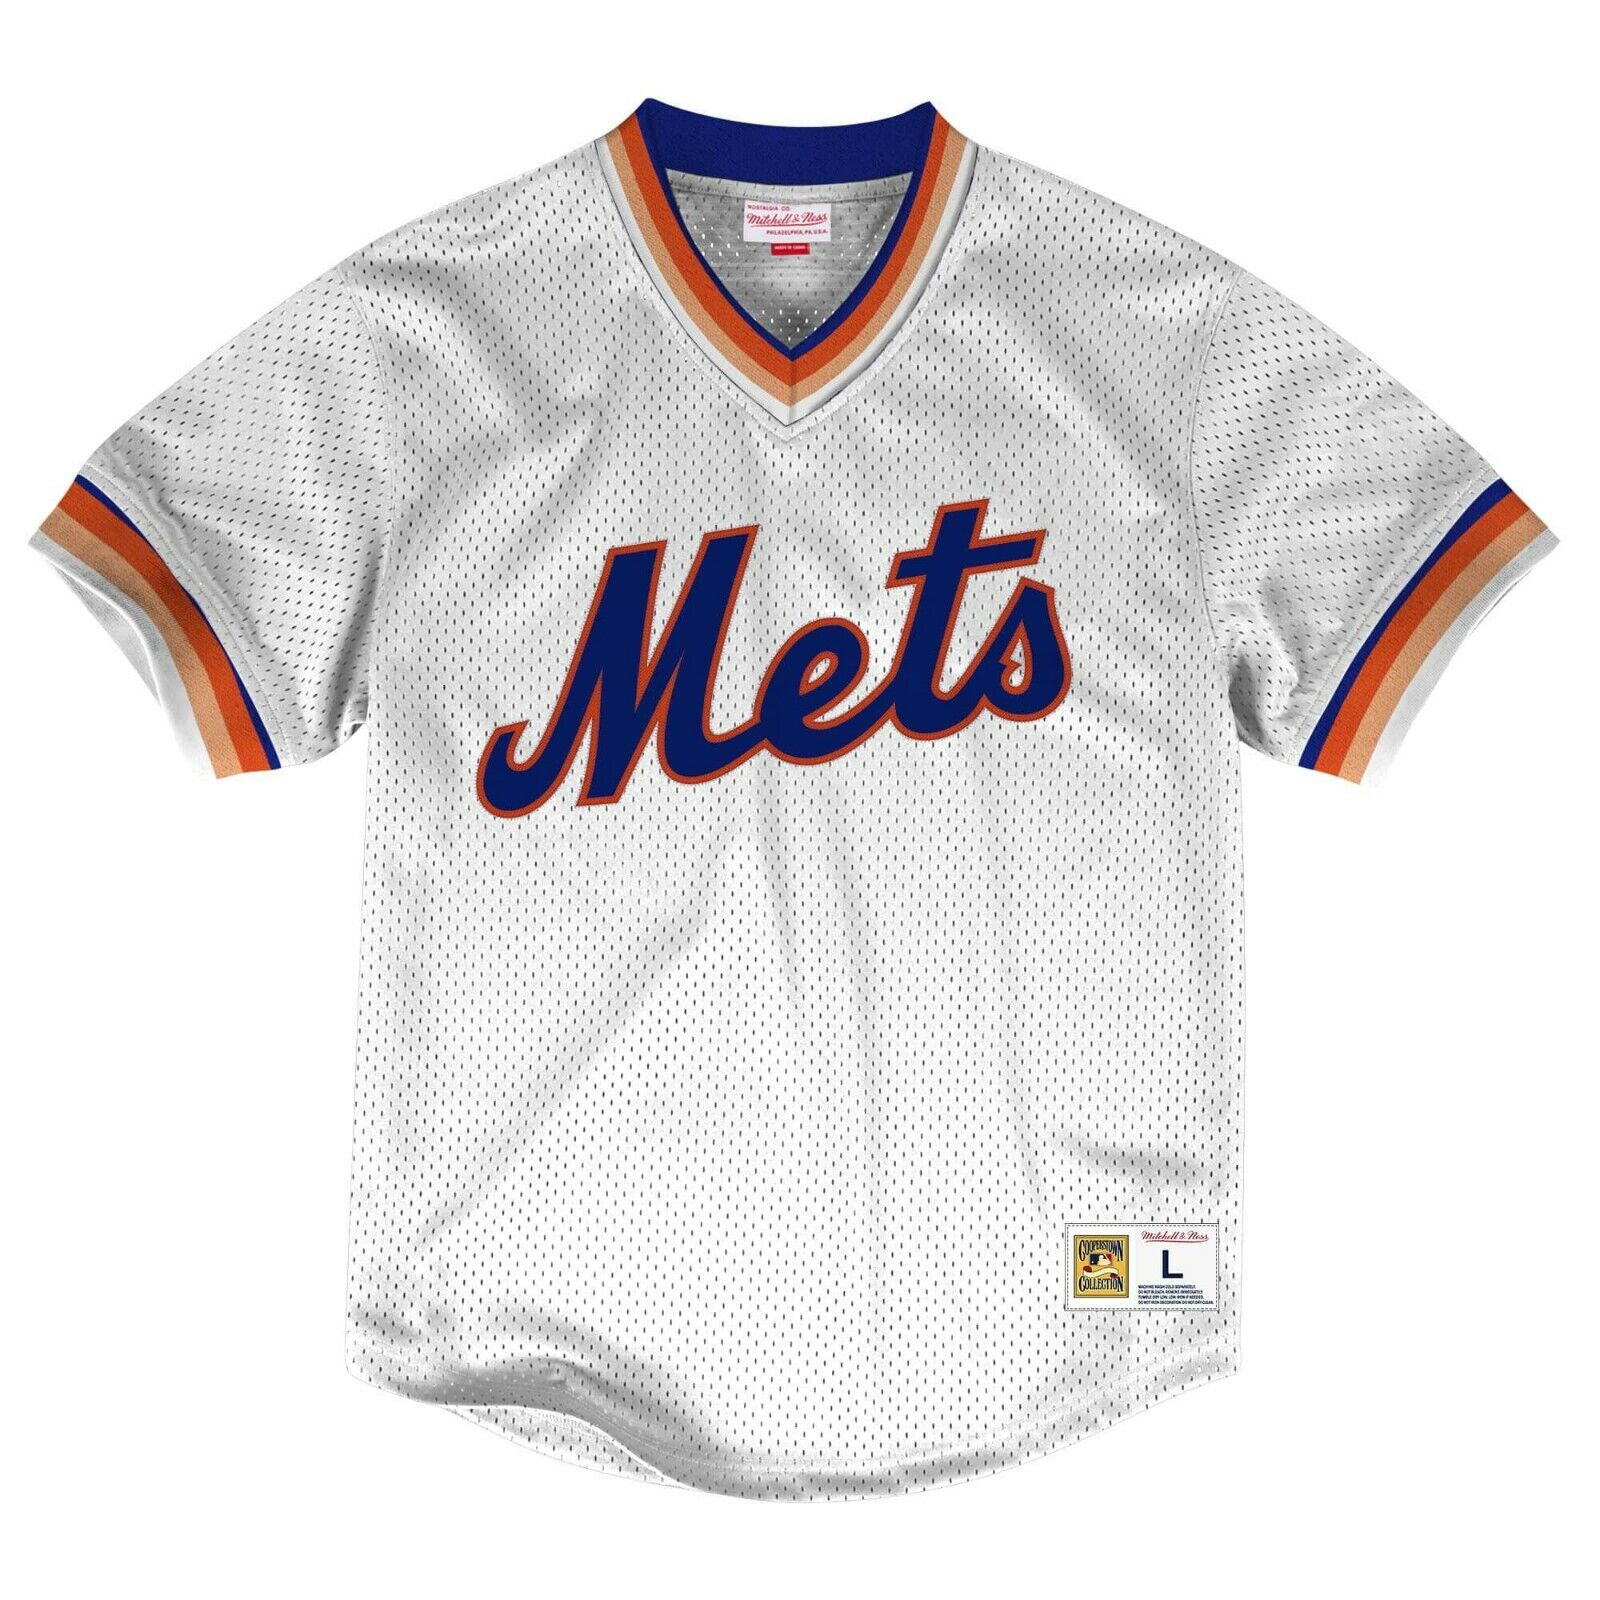 the latest f4104 acff9 Details about New MITCHELL & NESS MLB New York Mets MESH White JERSEY